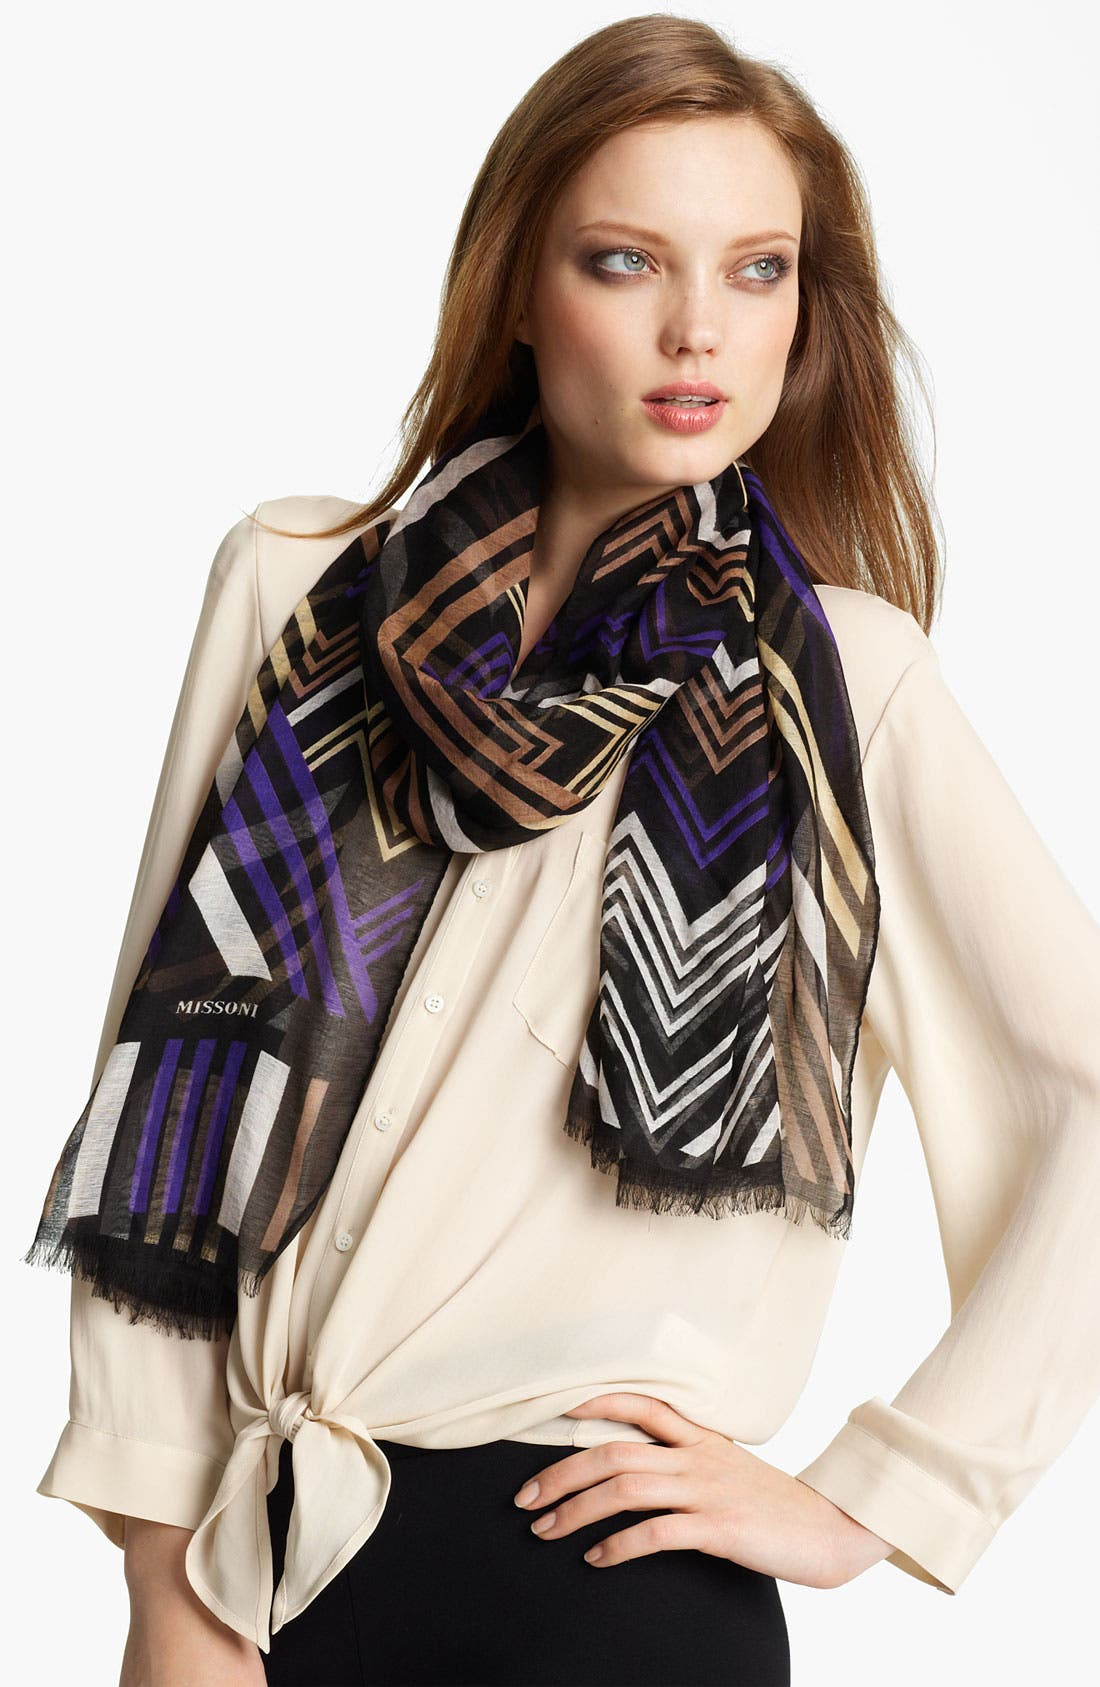 Alternate Image 1 Selected - Missoni 'Big Zag' Modal & Cashmere Scarf